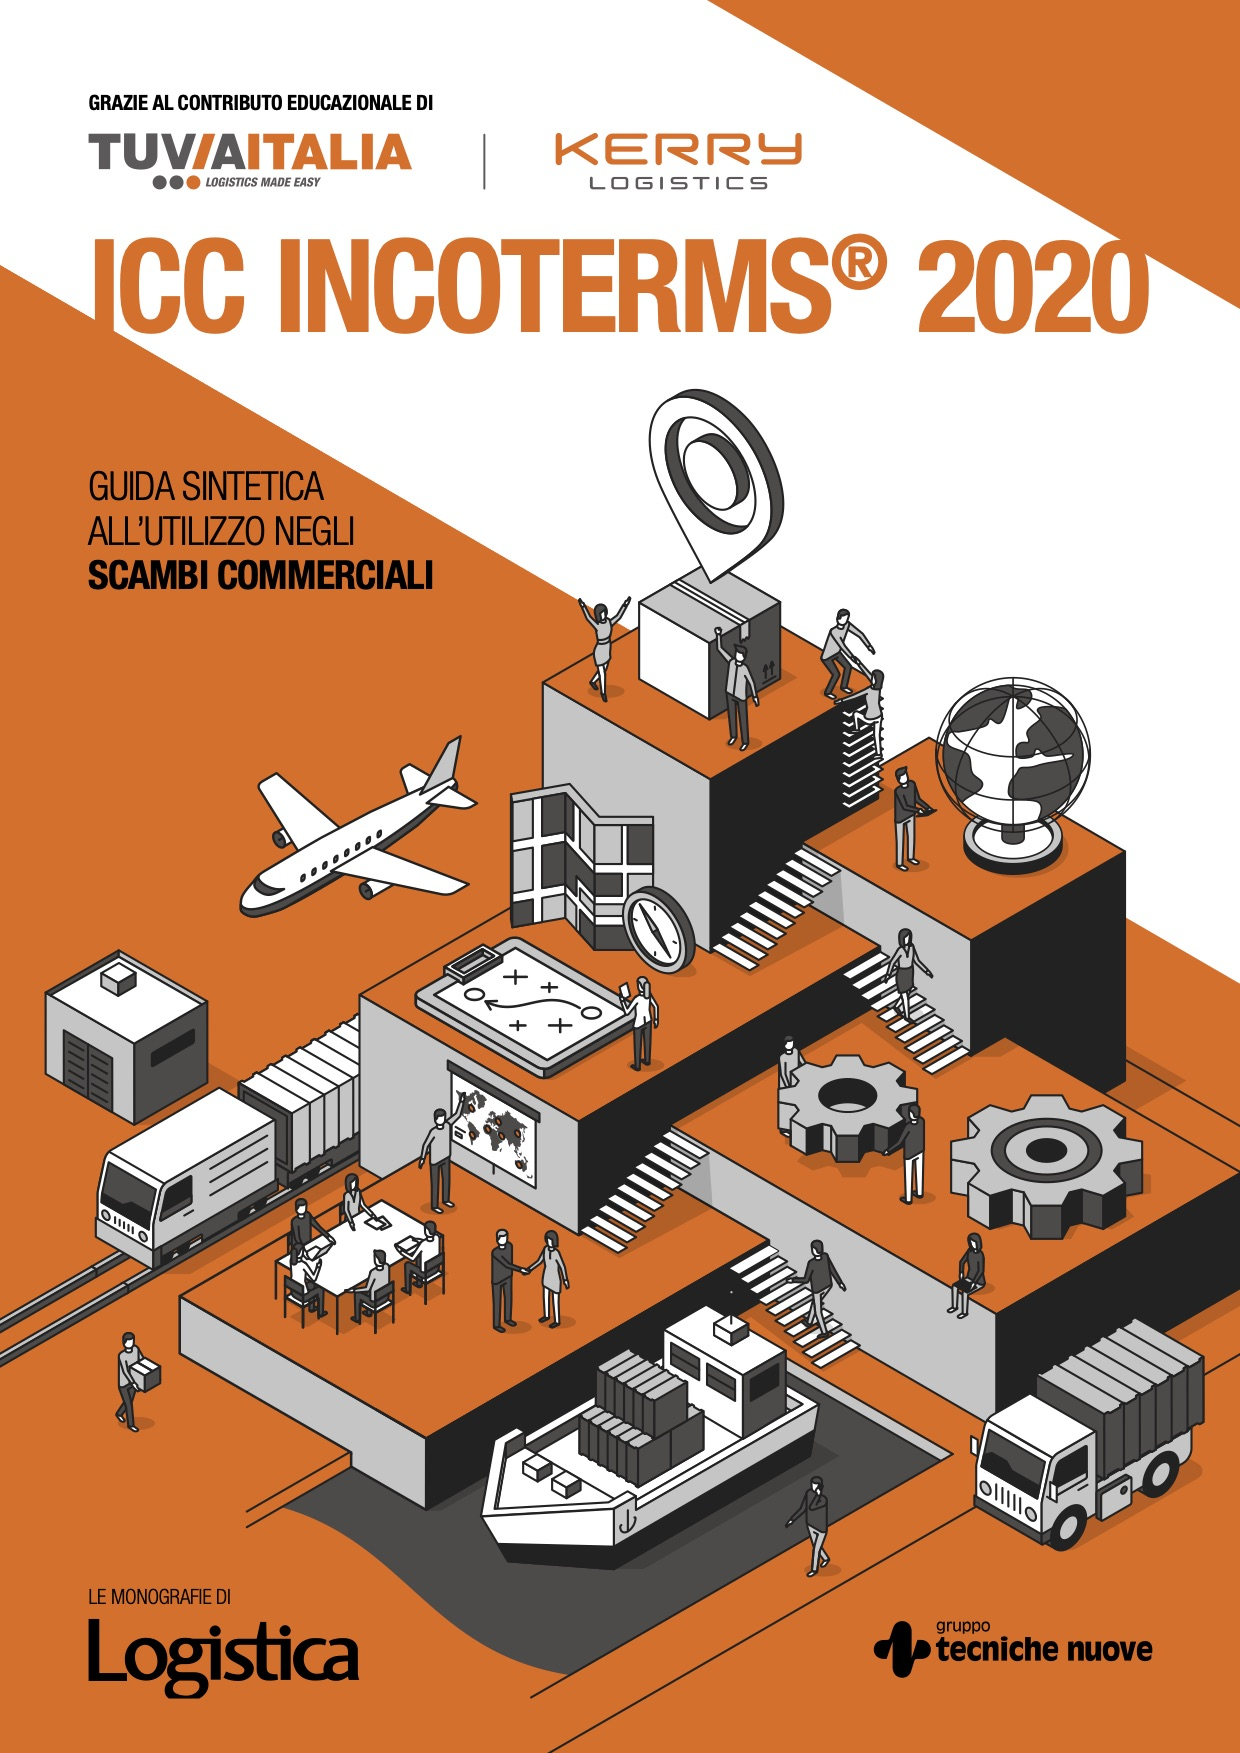 Spedire merci all'estero: INCOTERMS 2020. Scarica la mini guida